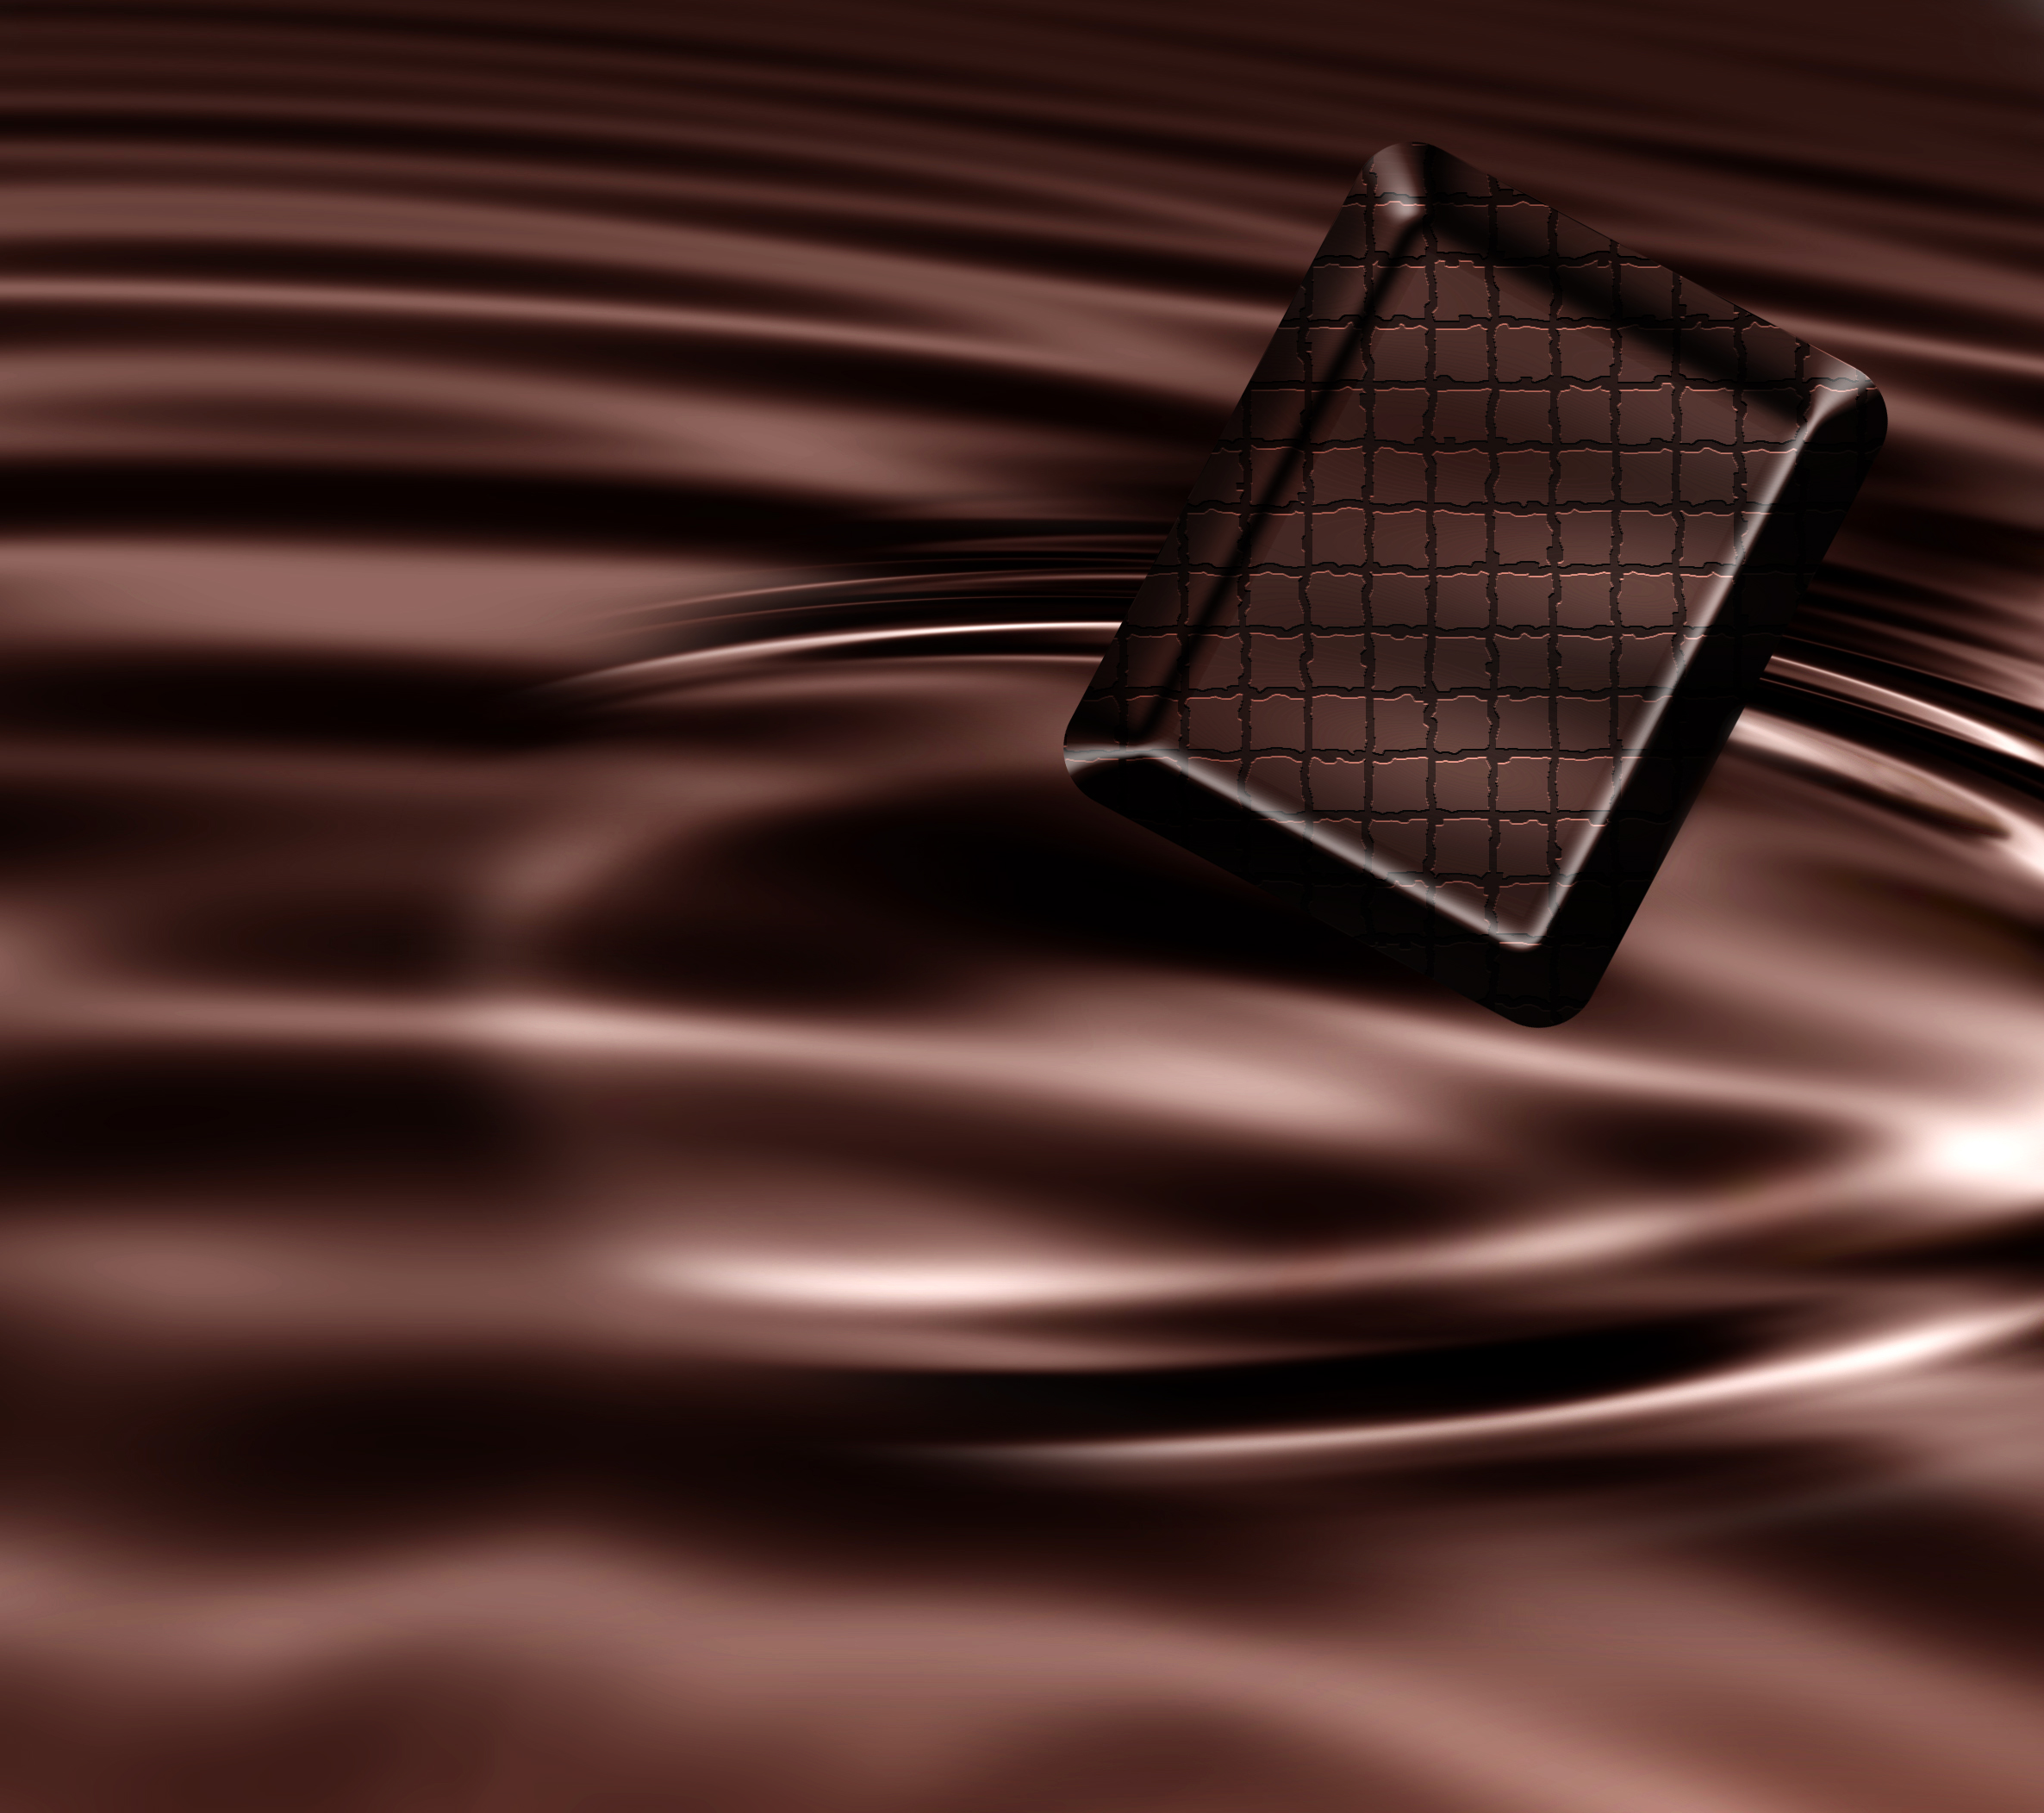 chocolate, texture, photo, background, download, chocolate, texture